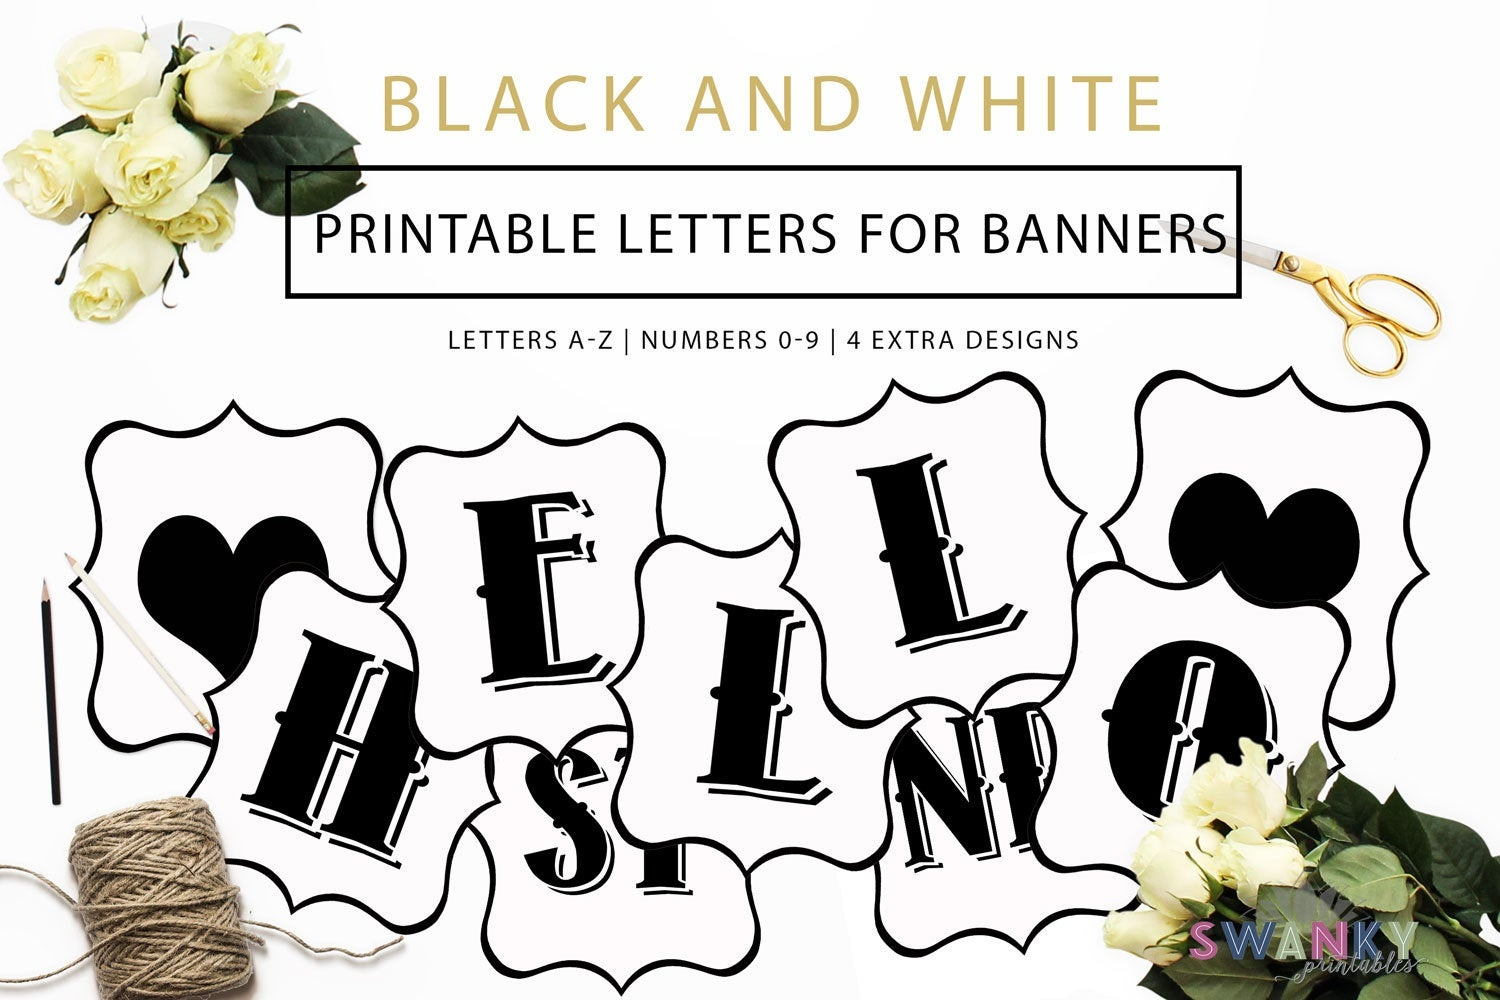 Printable Banner Letters Black And White Letters Make Your | Etsy - Diy Swank Free Printable Letters